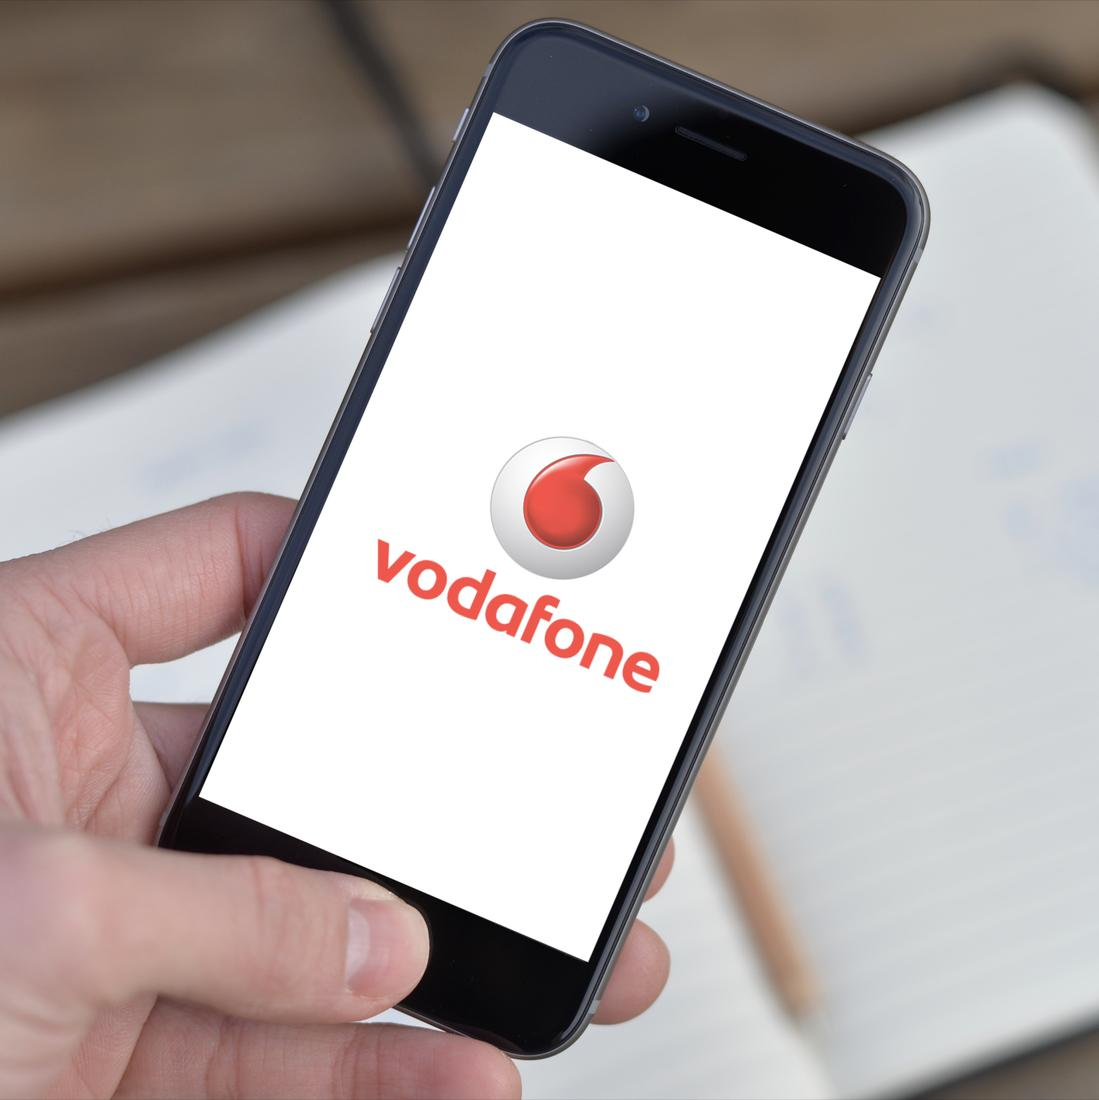 app store apple eink ufe bei vodafone via handy rechnung zahlen mac life. Black Bedroom Furniture Sets. Home Design Ideas